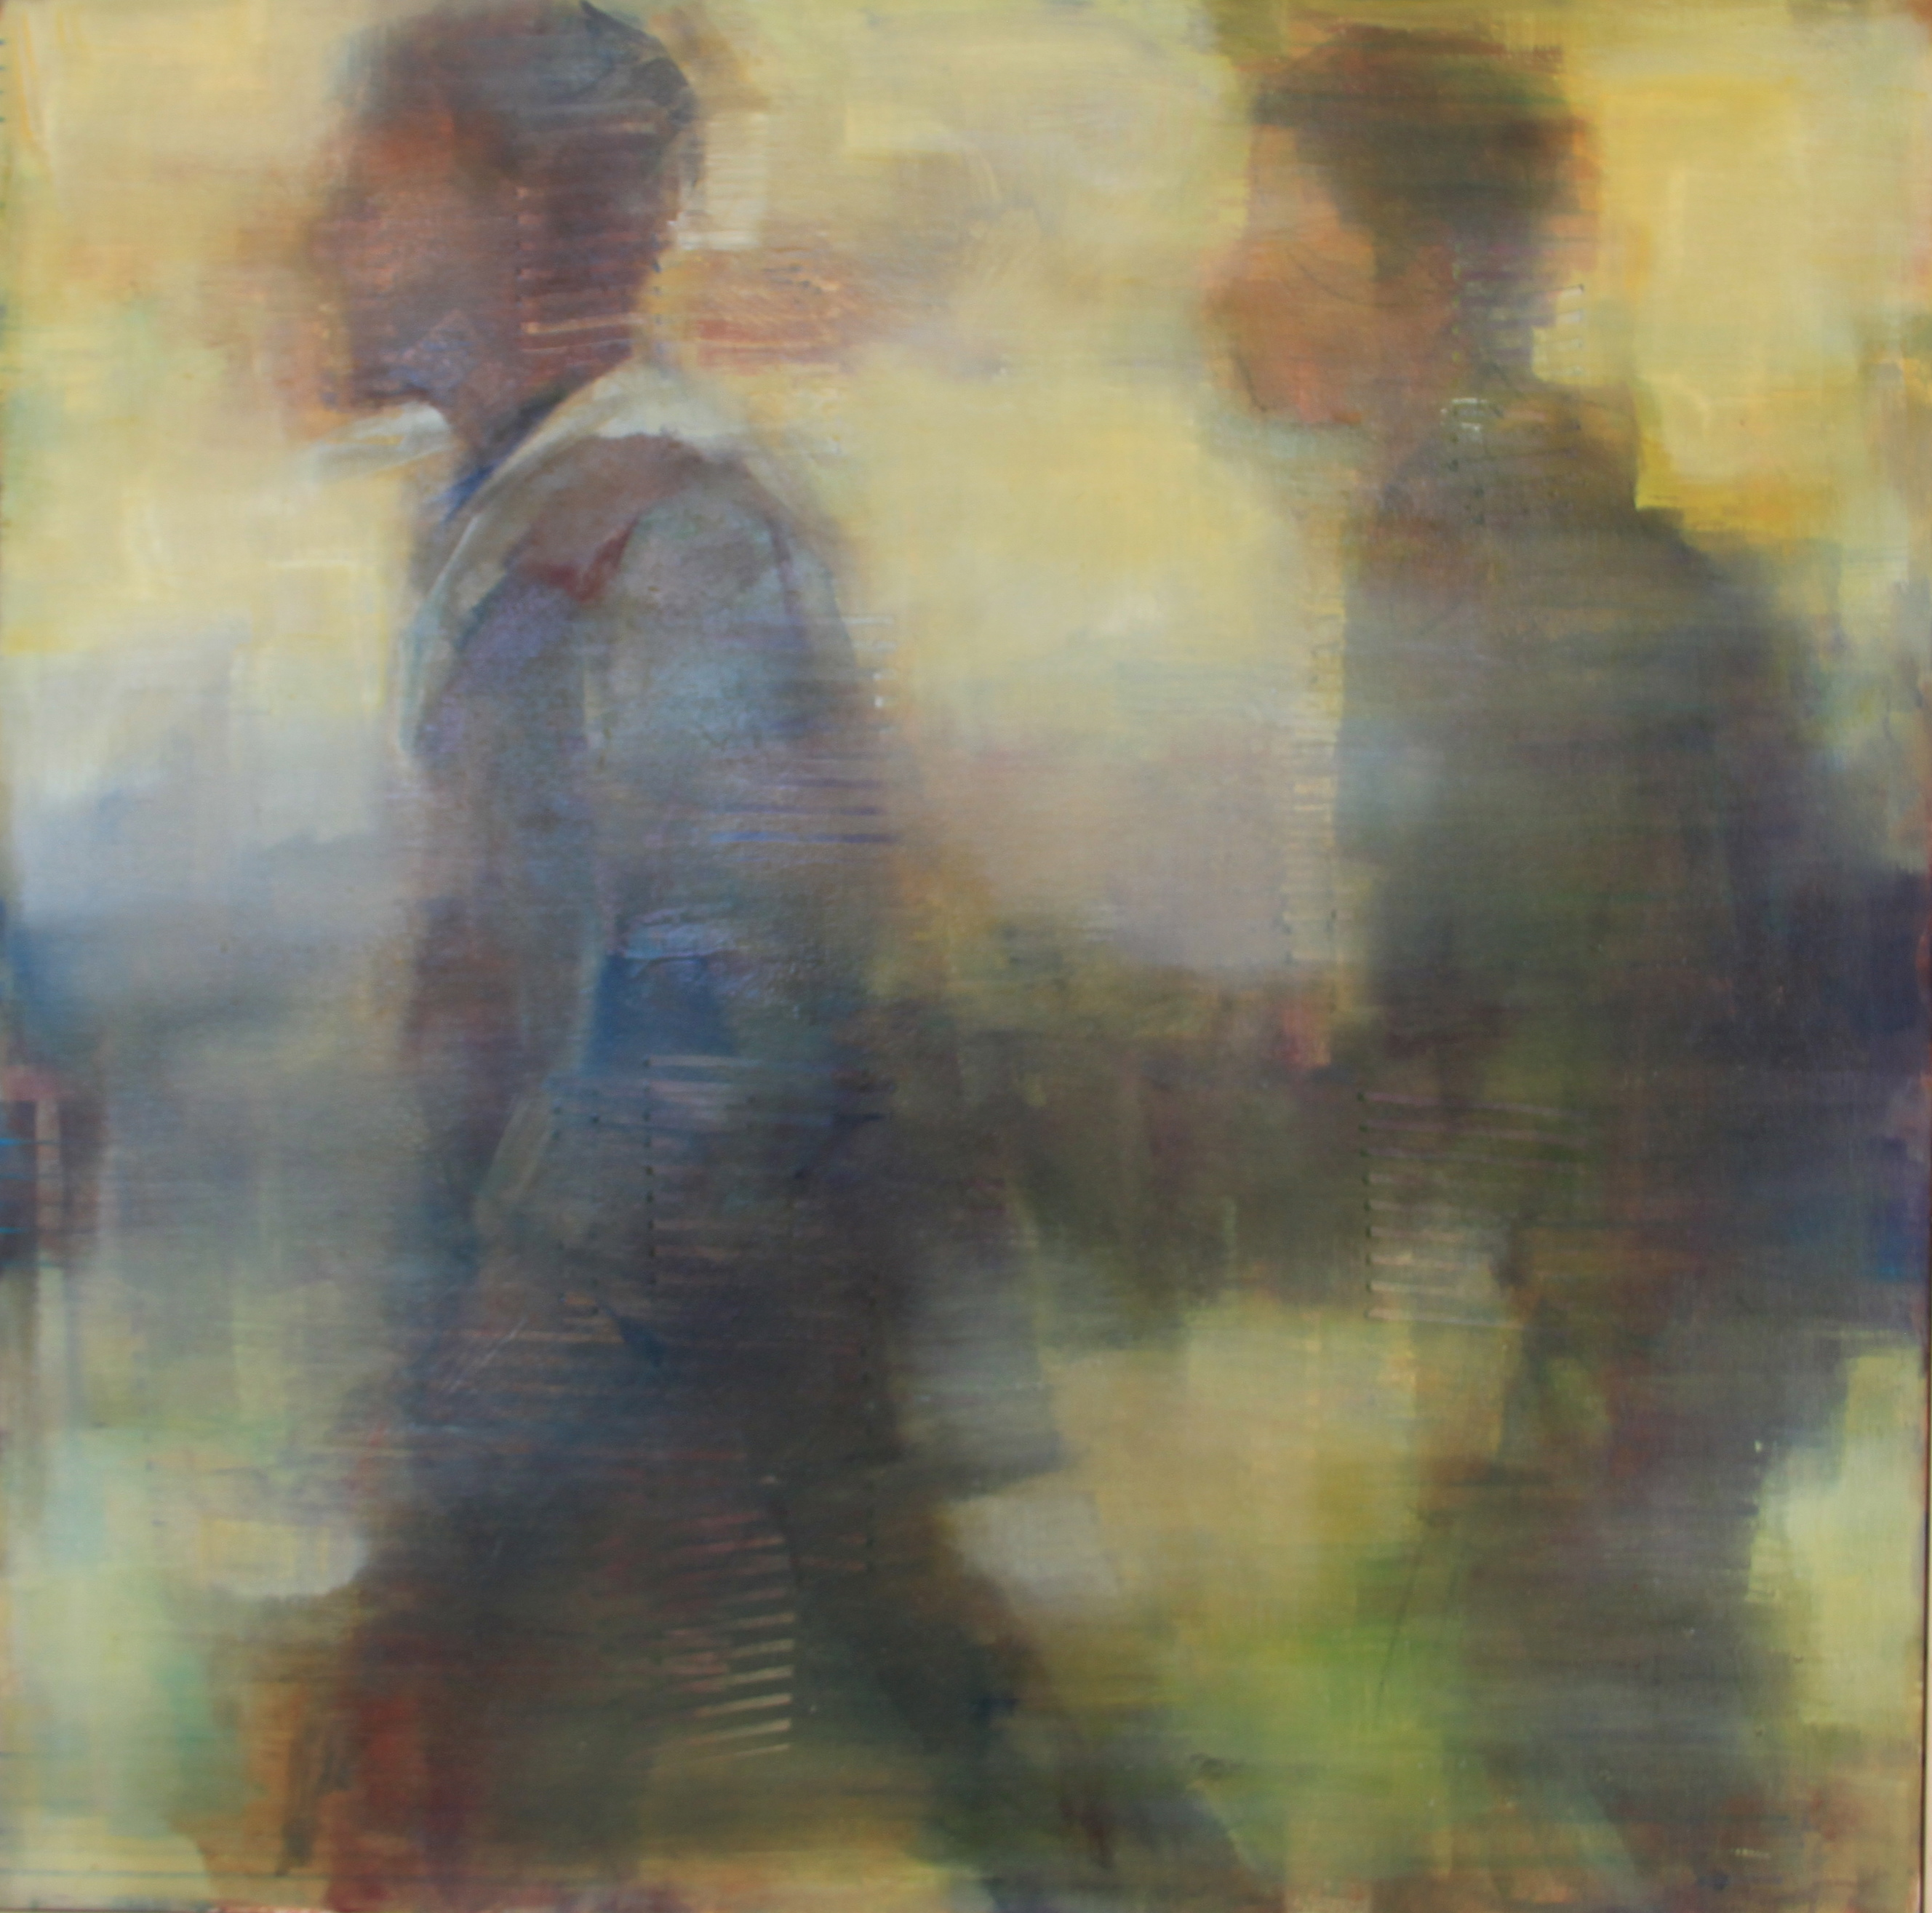 Oil paintings of two male figures hurrying through an airport